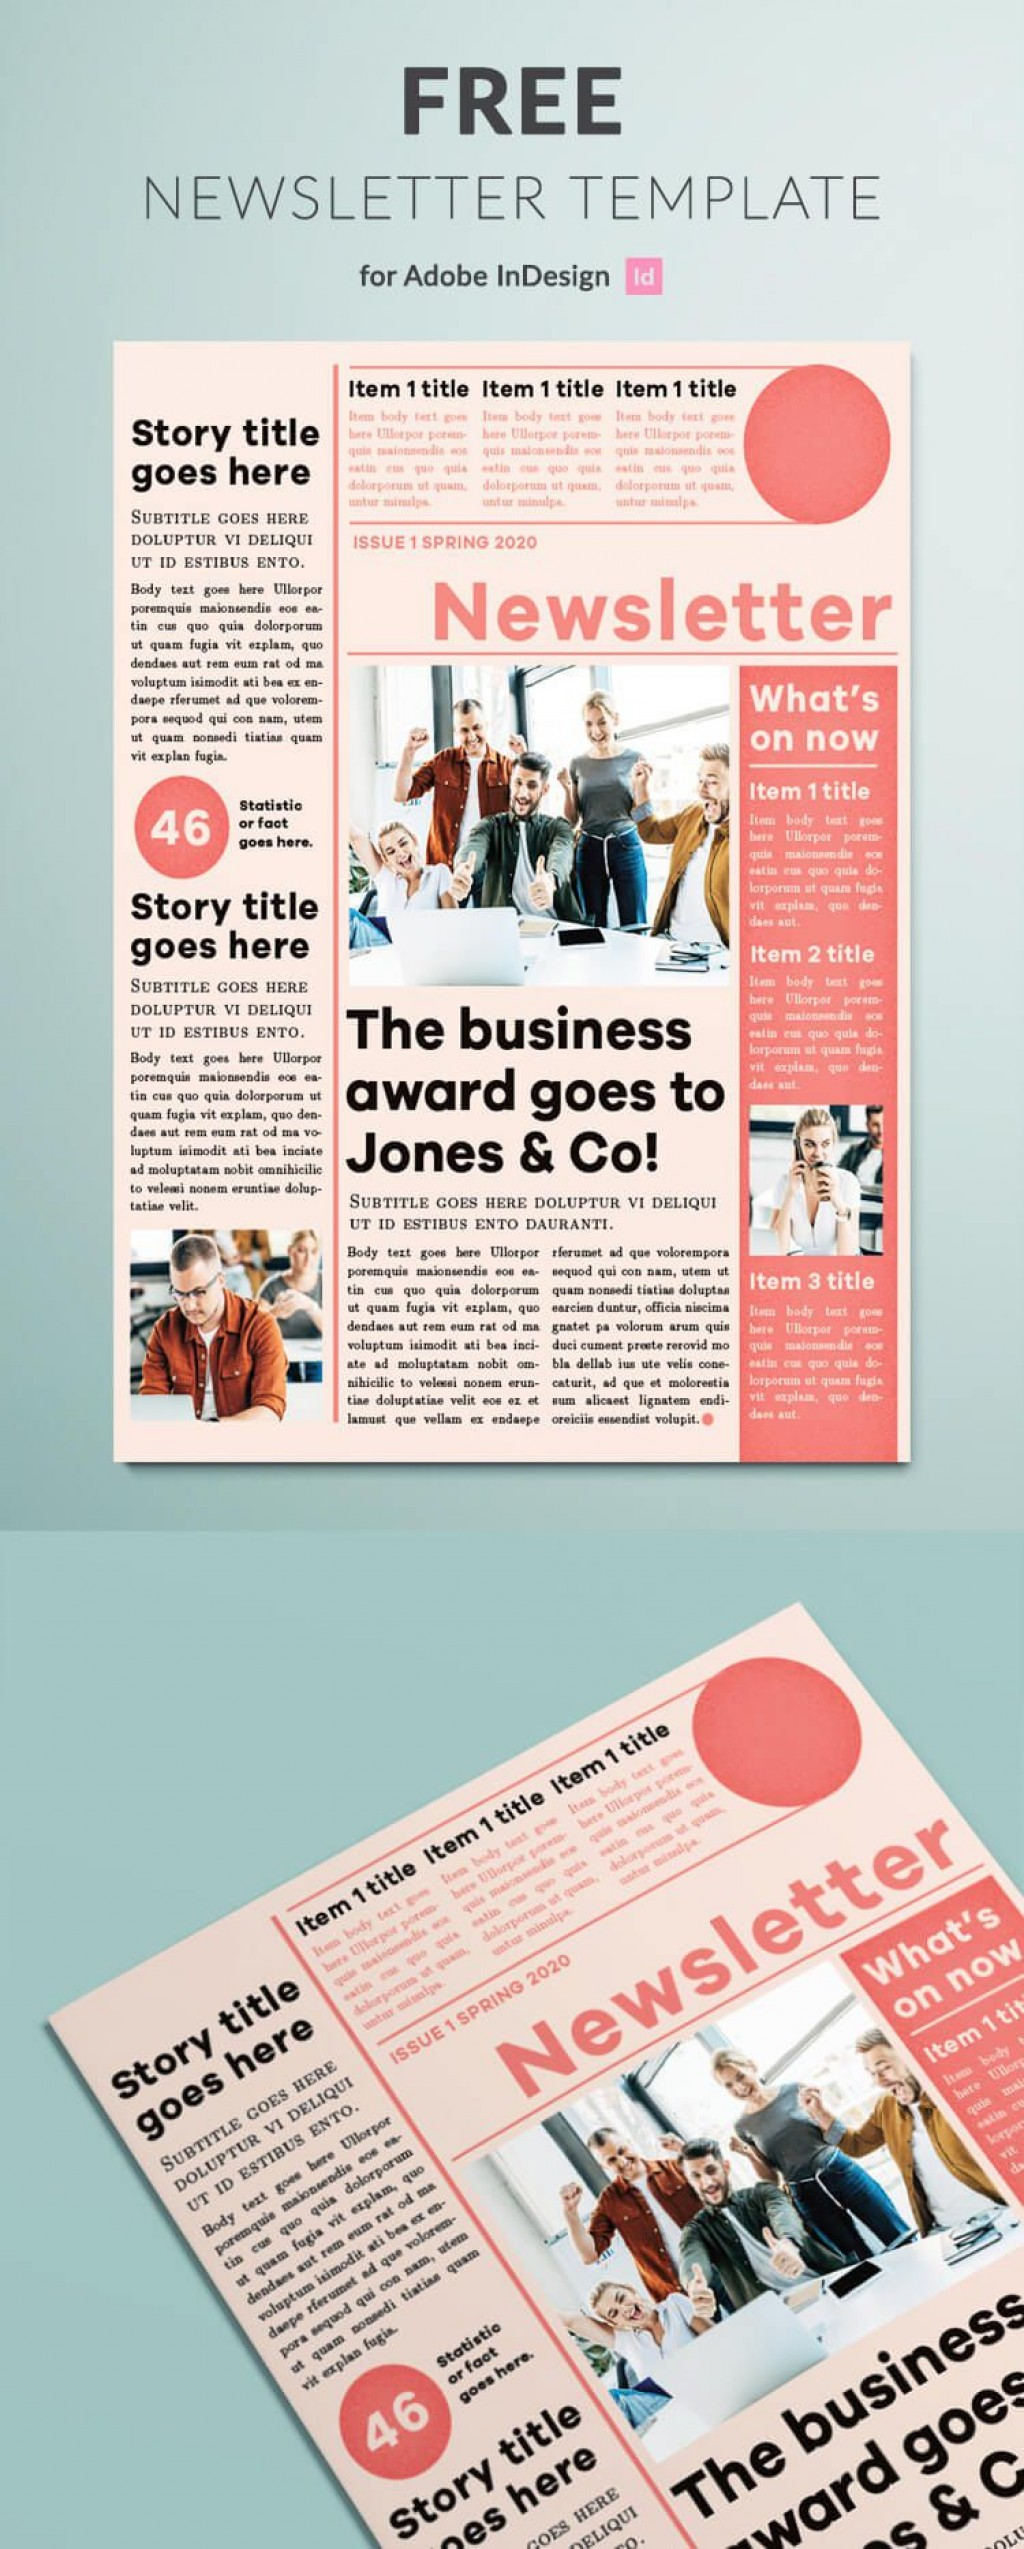 008 Awful Indesign Newsletter Template Free High Def  Cs6 Email Adobe DownloadLarge